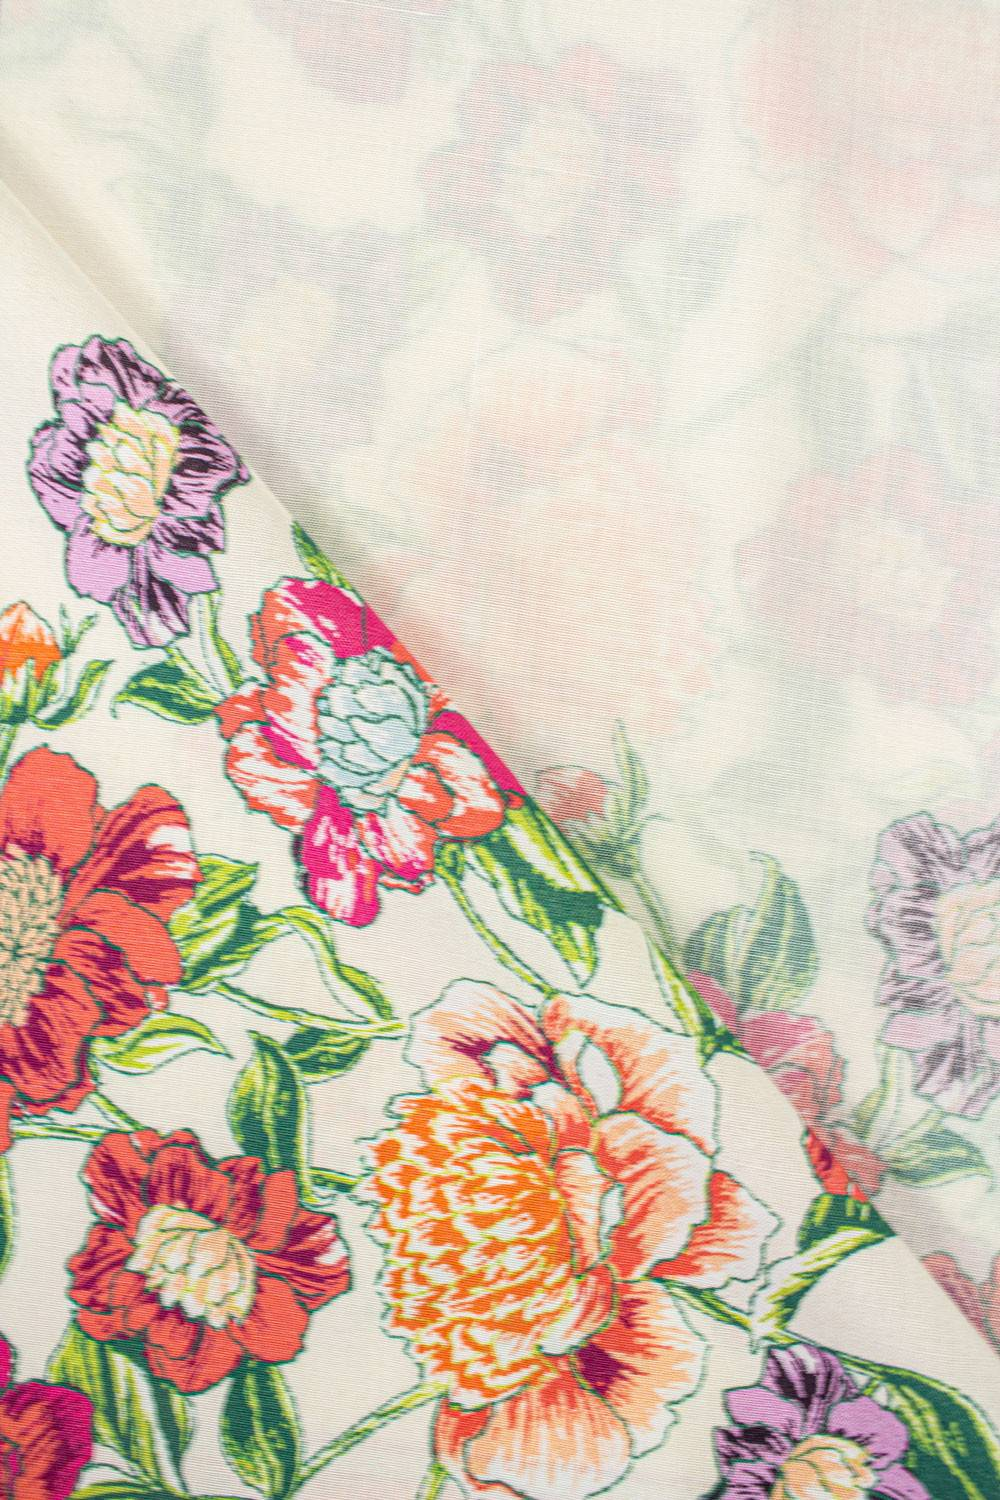 Fabric - Viscose - Ecru With Flowers And Stripes - 140 cm - 130 g/m2